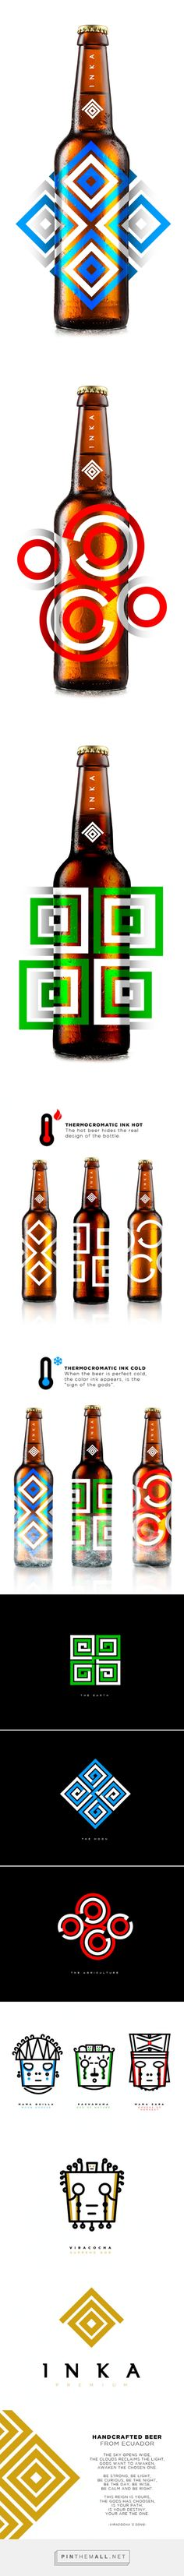 Inka Premium #Beer #packaging http://www.packagingoftheworld.com/2015/01/inka-premium-beer-concept.html